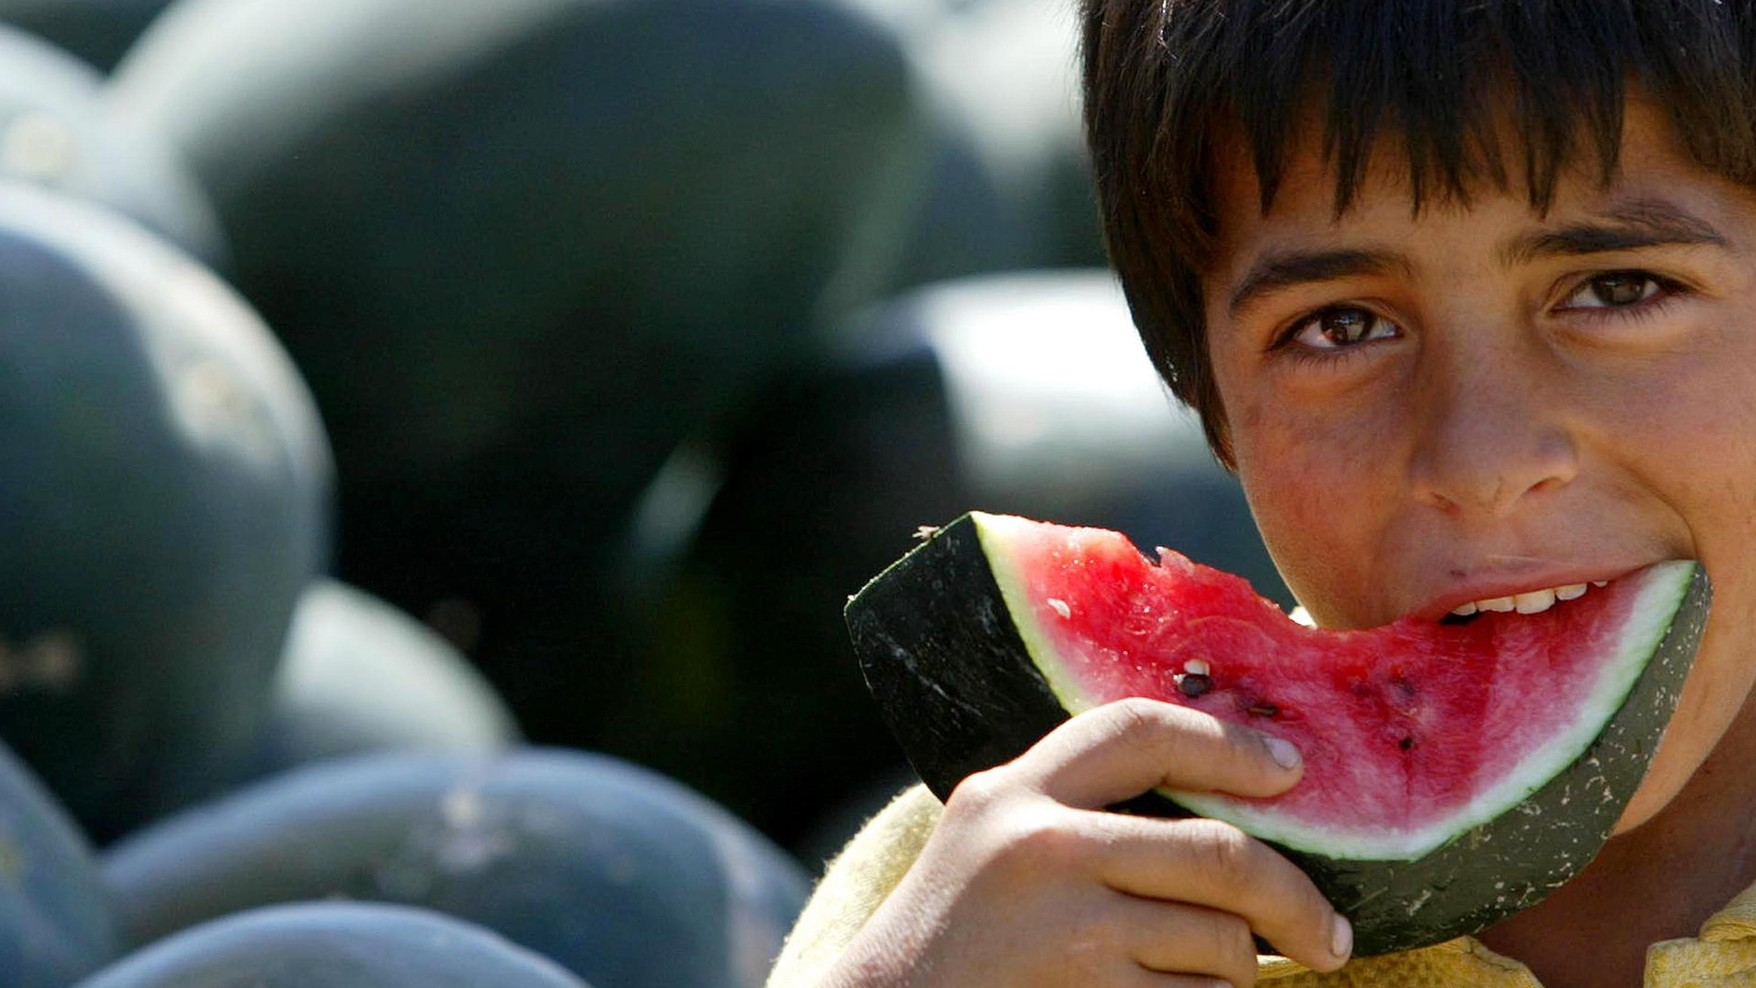 Why Watermelons Are a Symbol of Political Protest for Palestinians